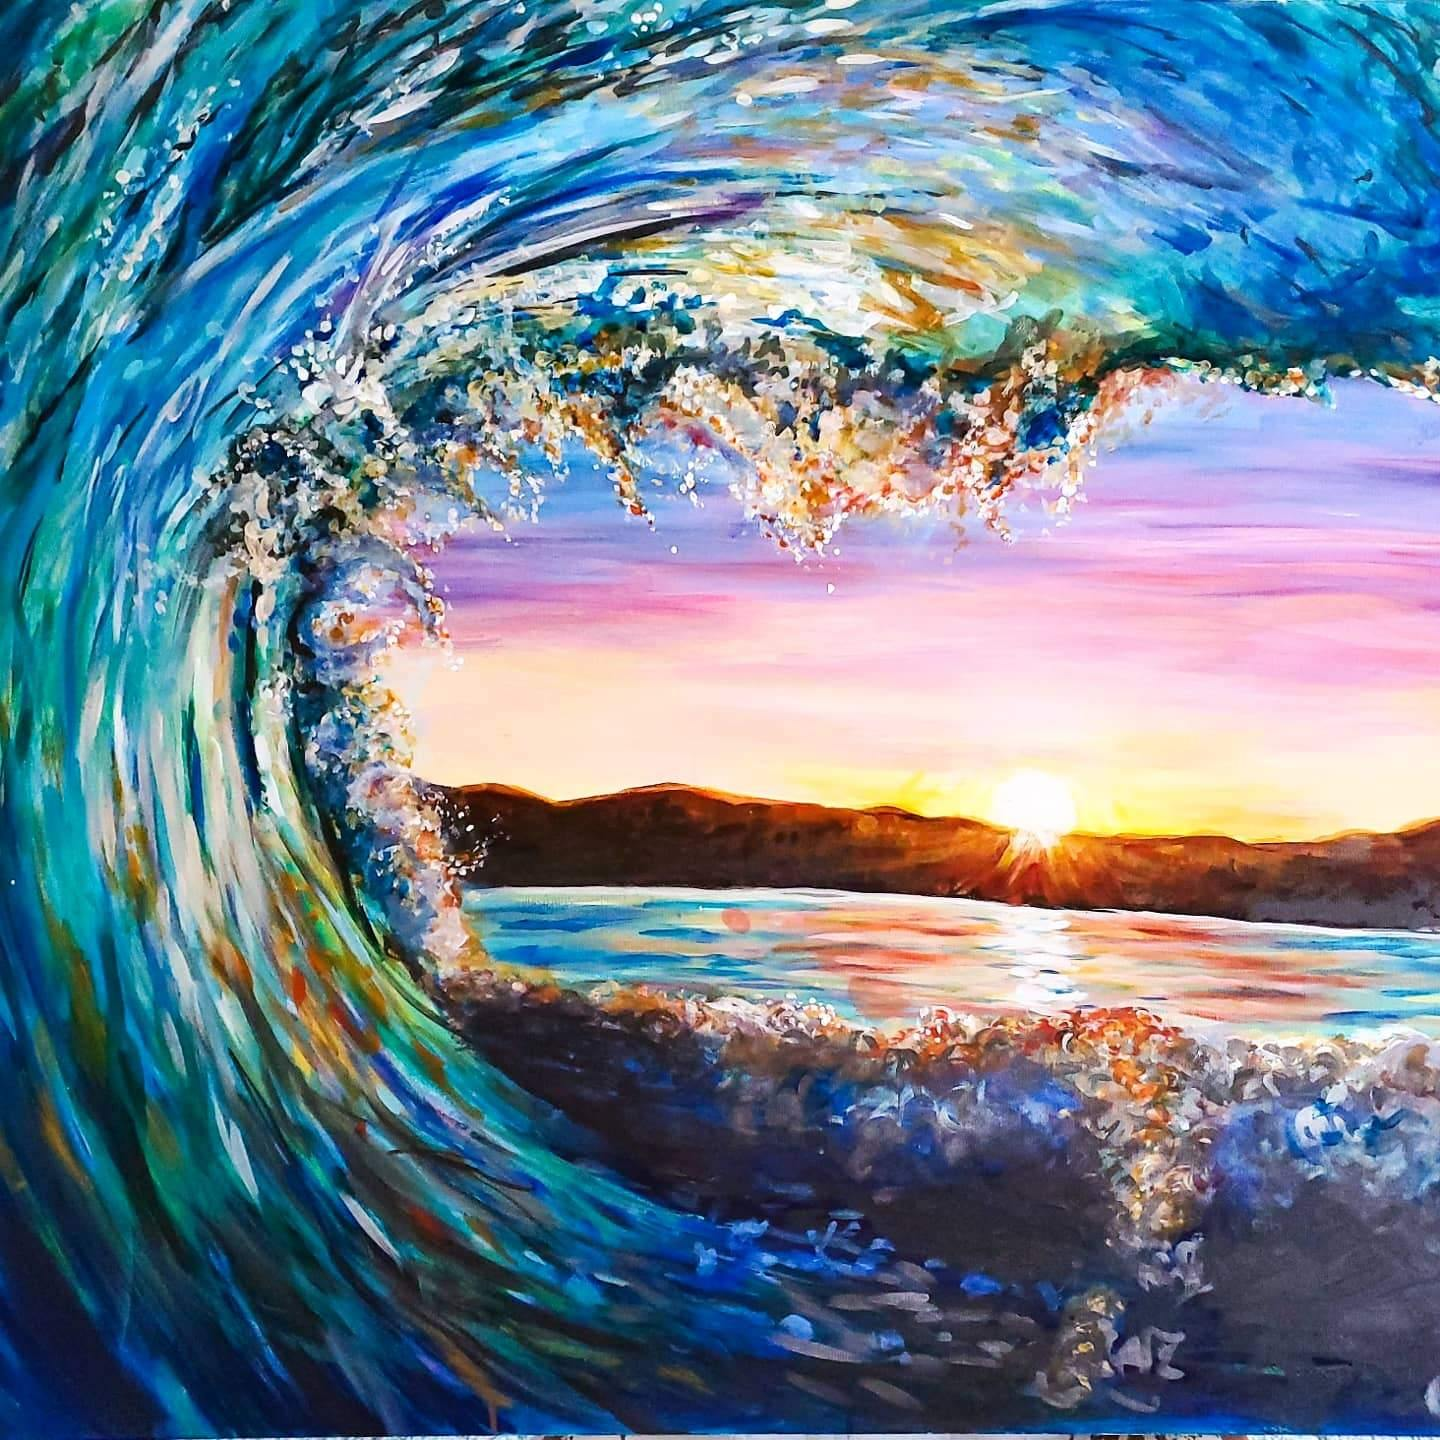 ocean wave, blue wave. acrylic painting